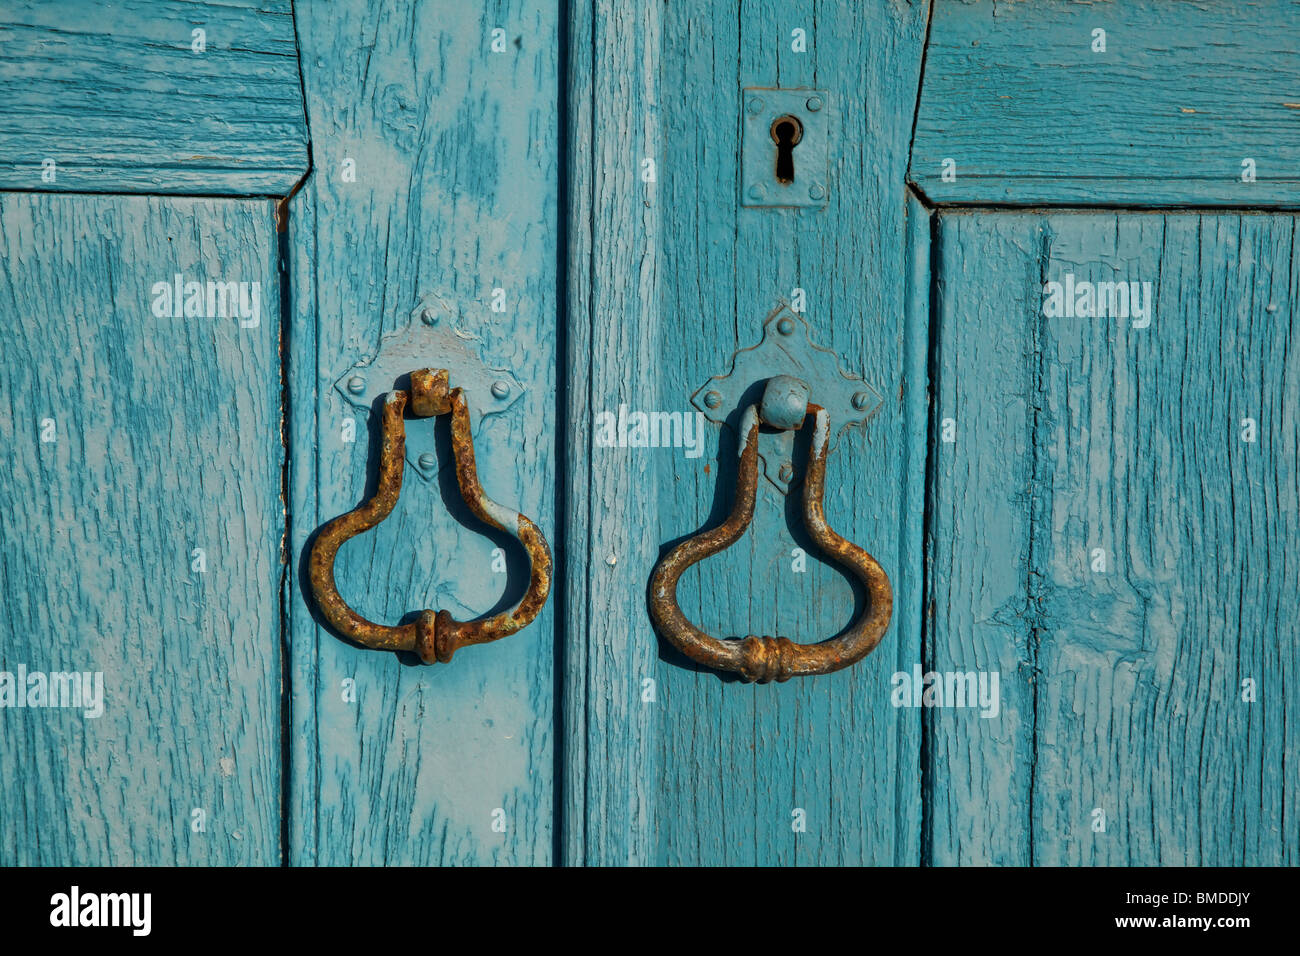 Rustic Door Knockers Rustic Blue Door Knockers Stock Photo Royalty Free Image